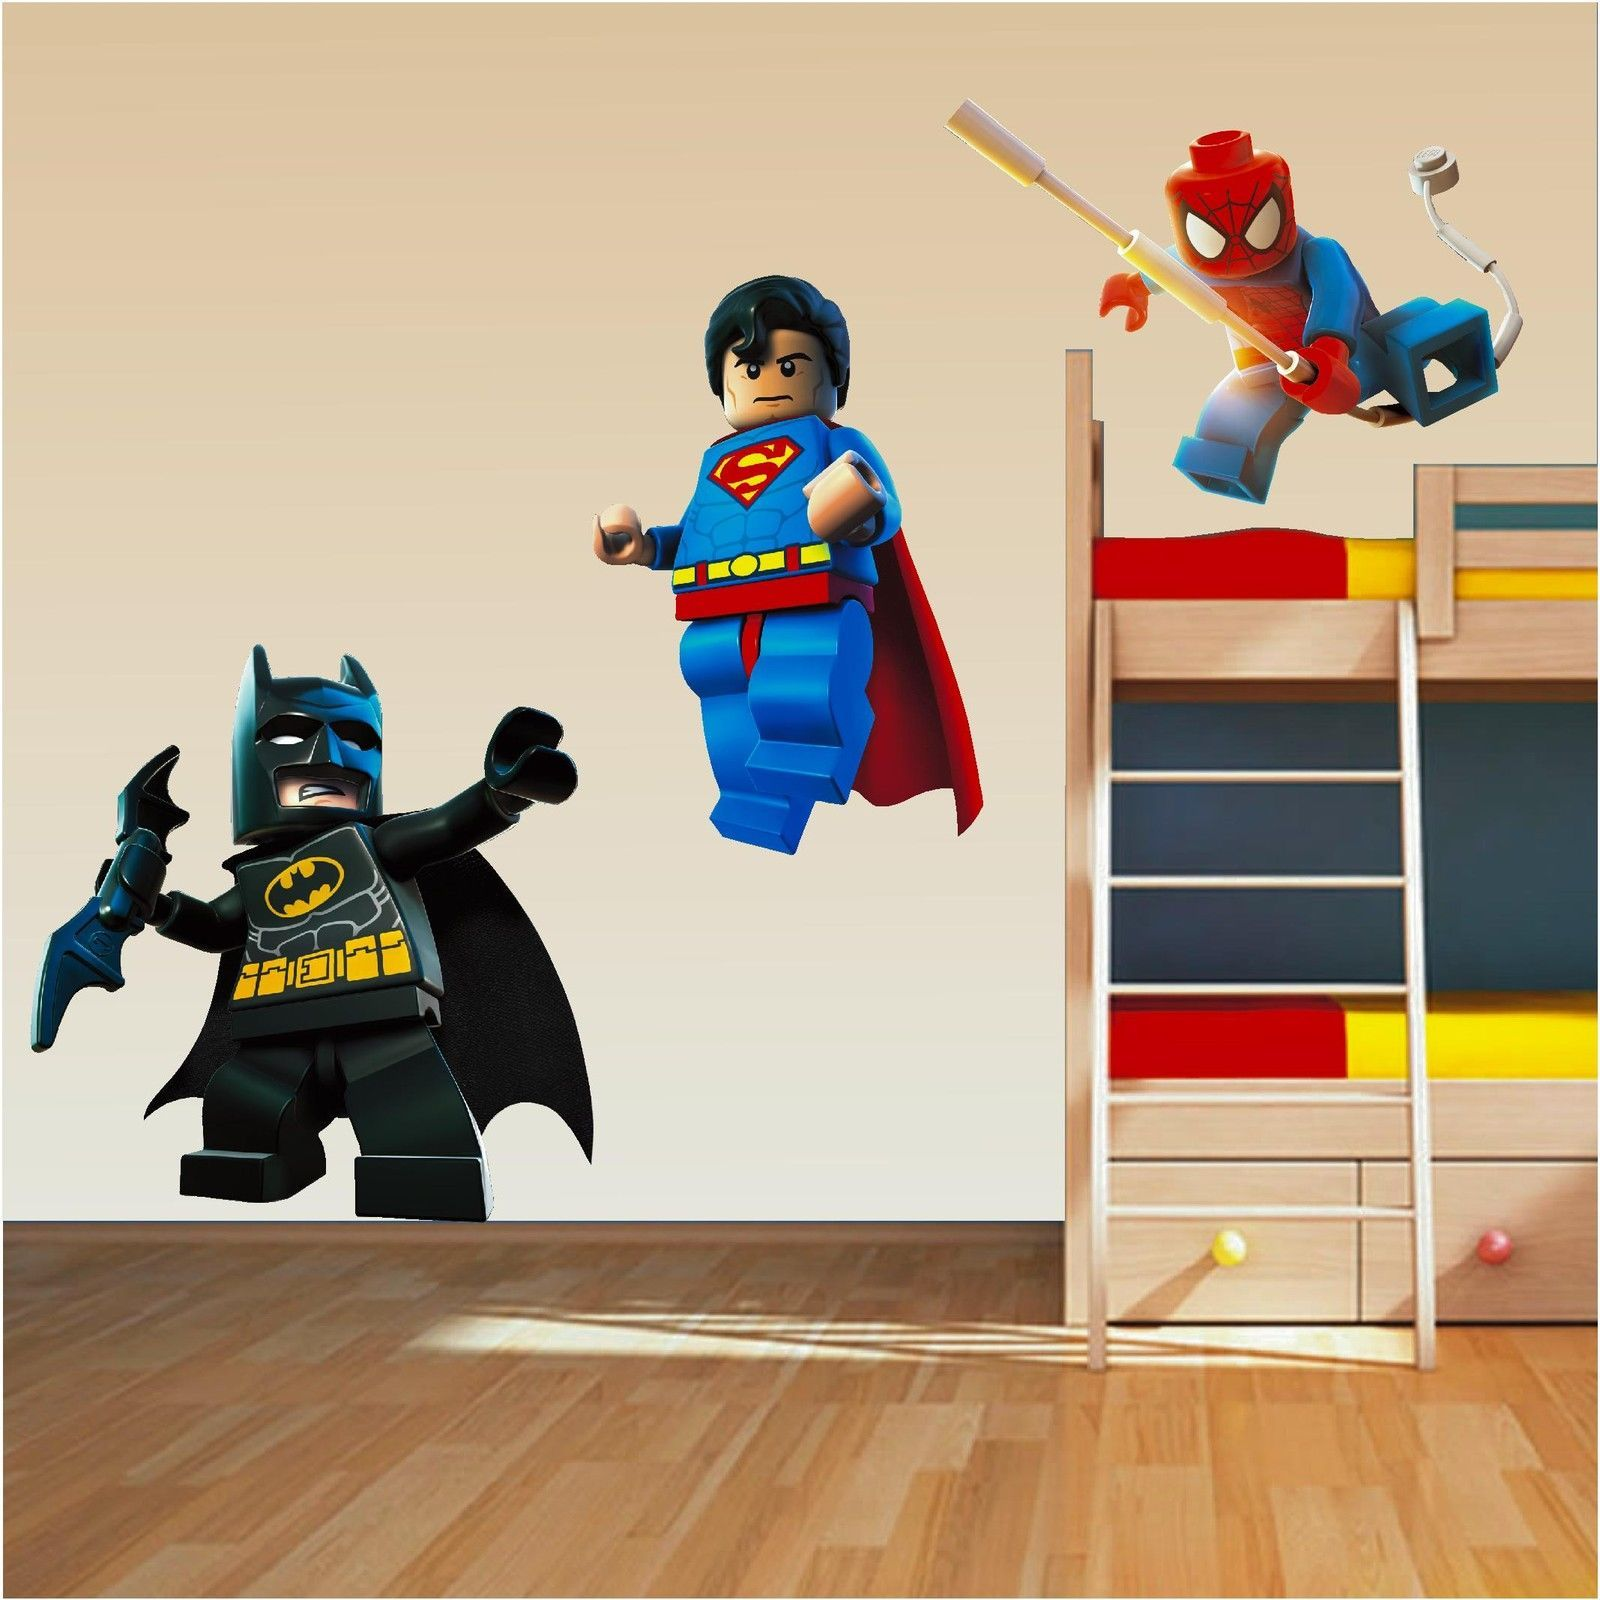 lego superhero set superman spiderman batman wall stickers  - lego superhero set superman spiderman batman wall stickers childrensbedroom in home furniture  diy home decor wall decals  stickers